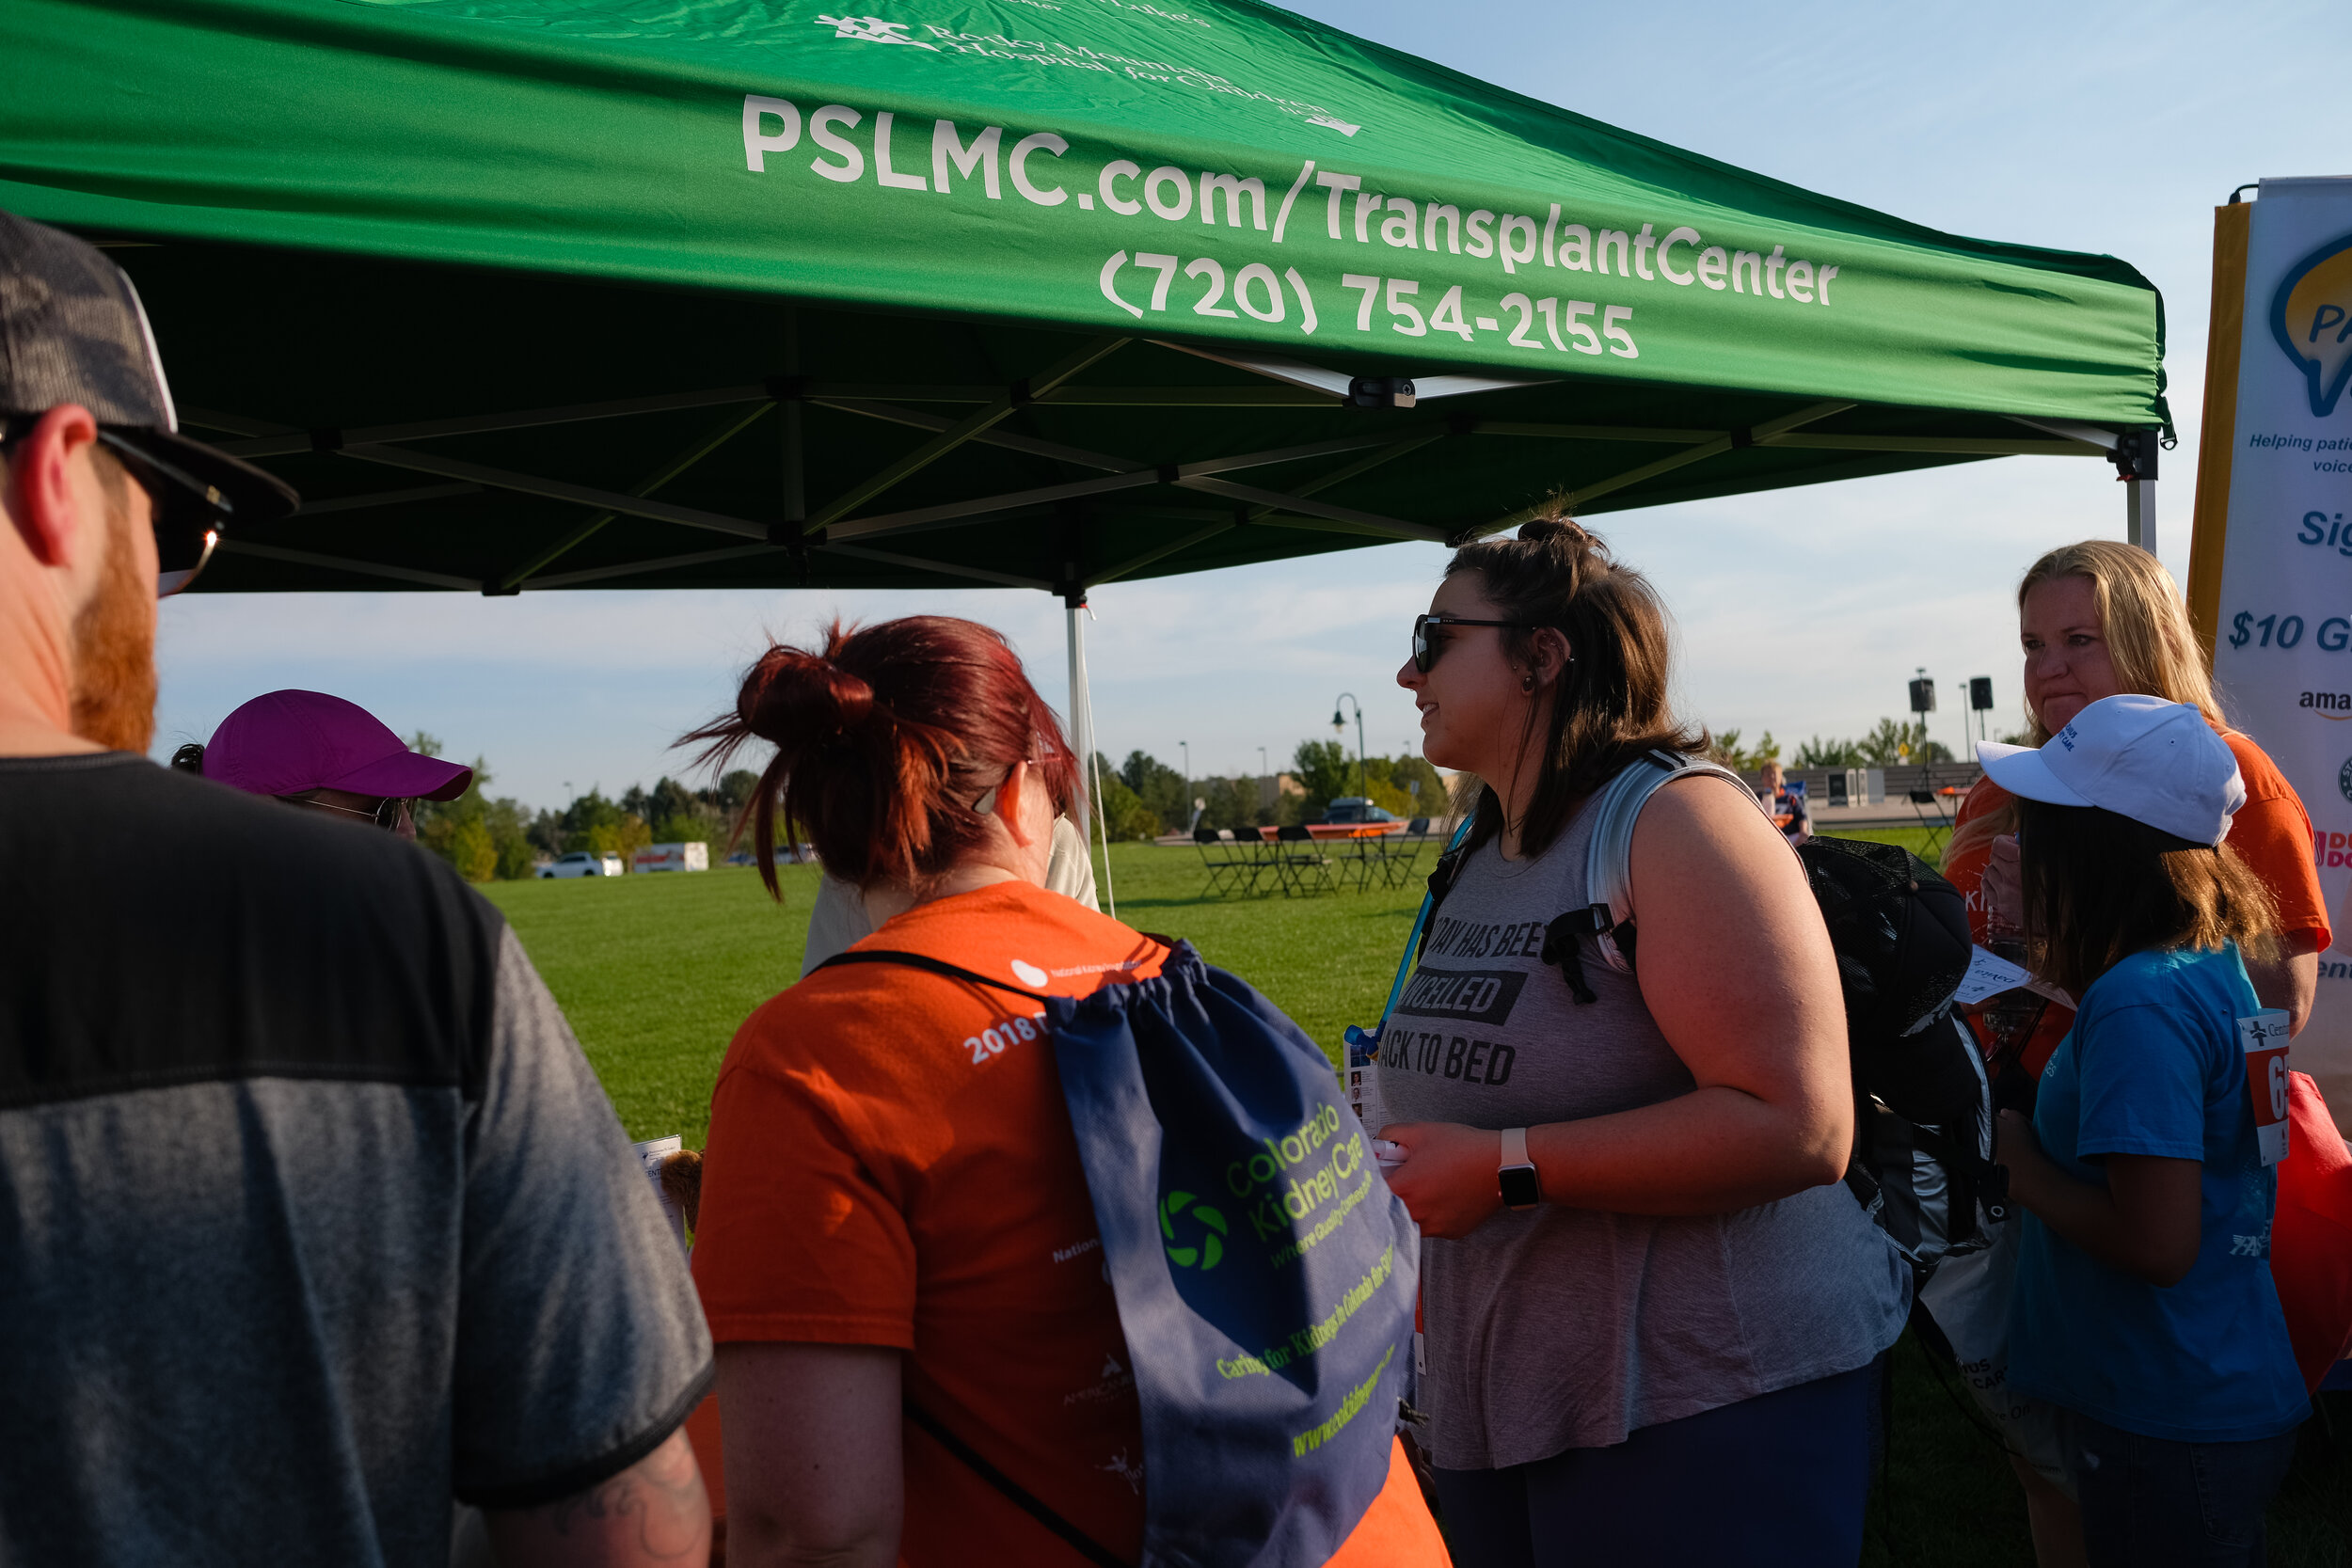 Denver Kidney Walk-31.jpg